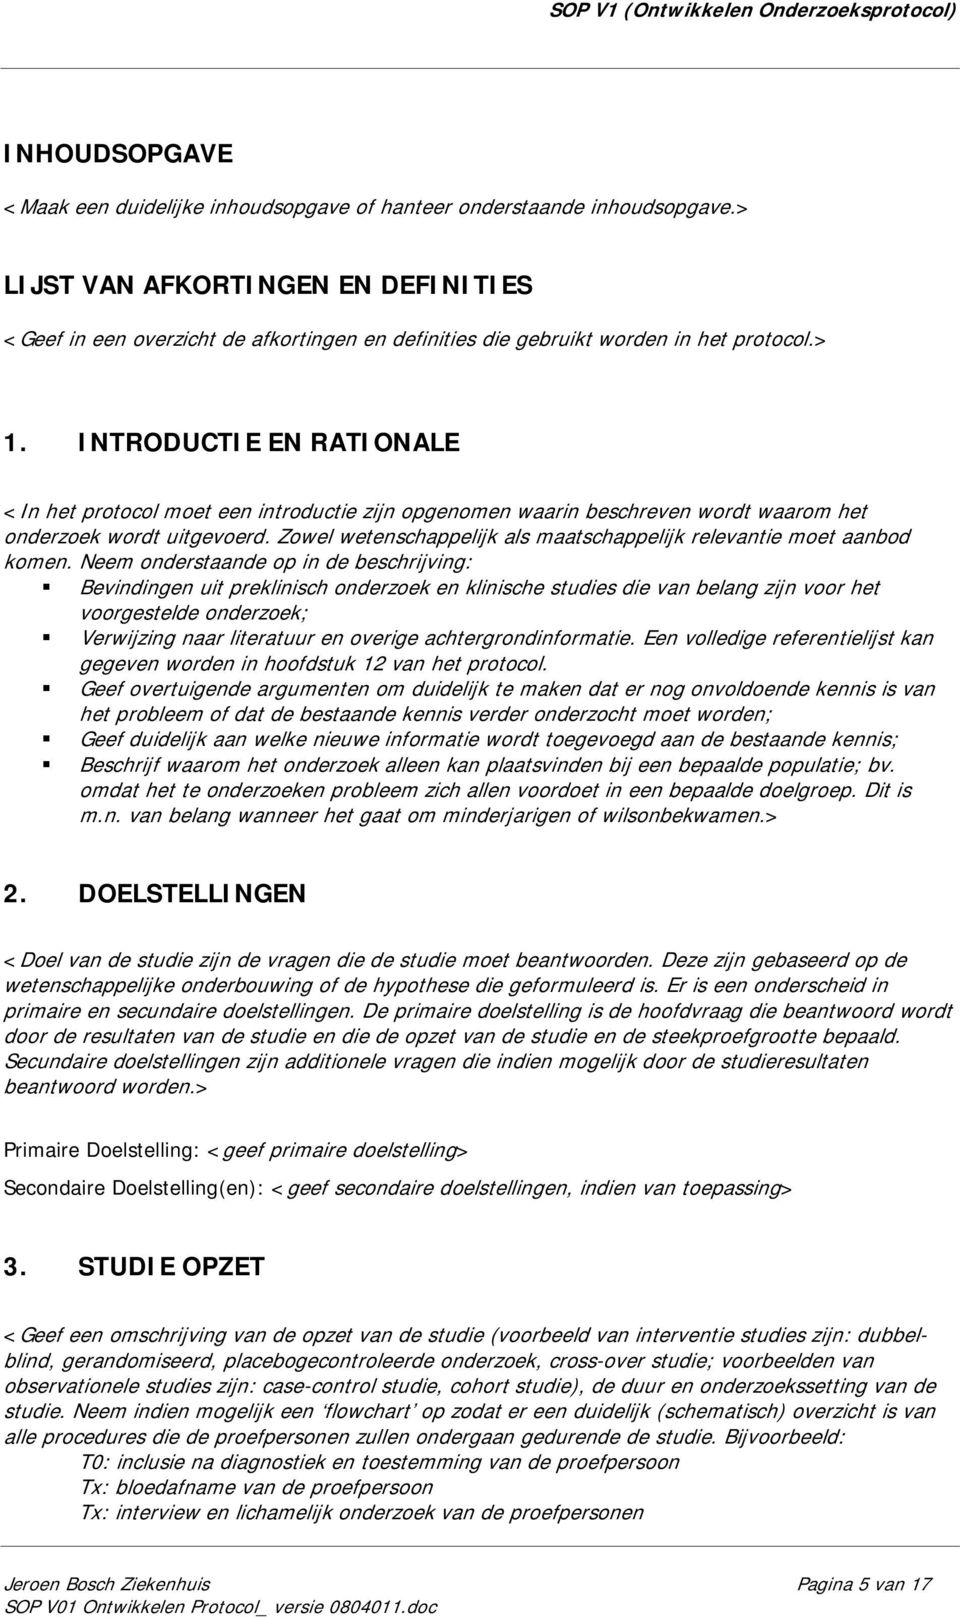 INTRODUCTIE EN RATIONALE <In het protocol moet een introductie zijn opgenomen waarin beschreven wordt waarom het onderzoek wordt uitgevoerd.